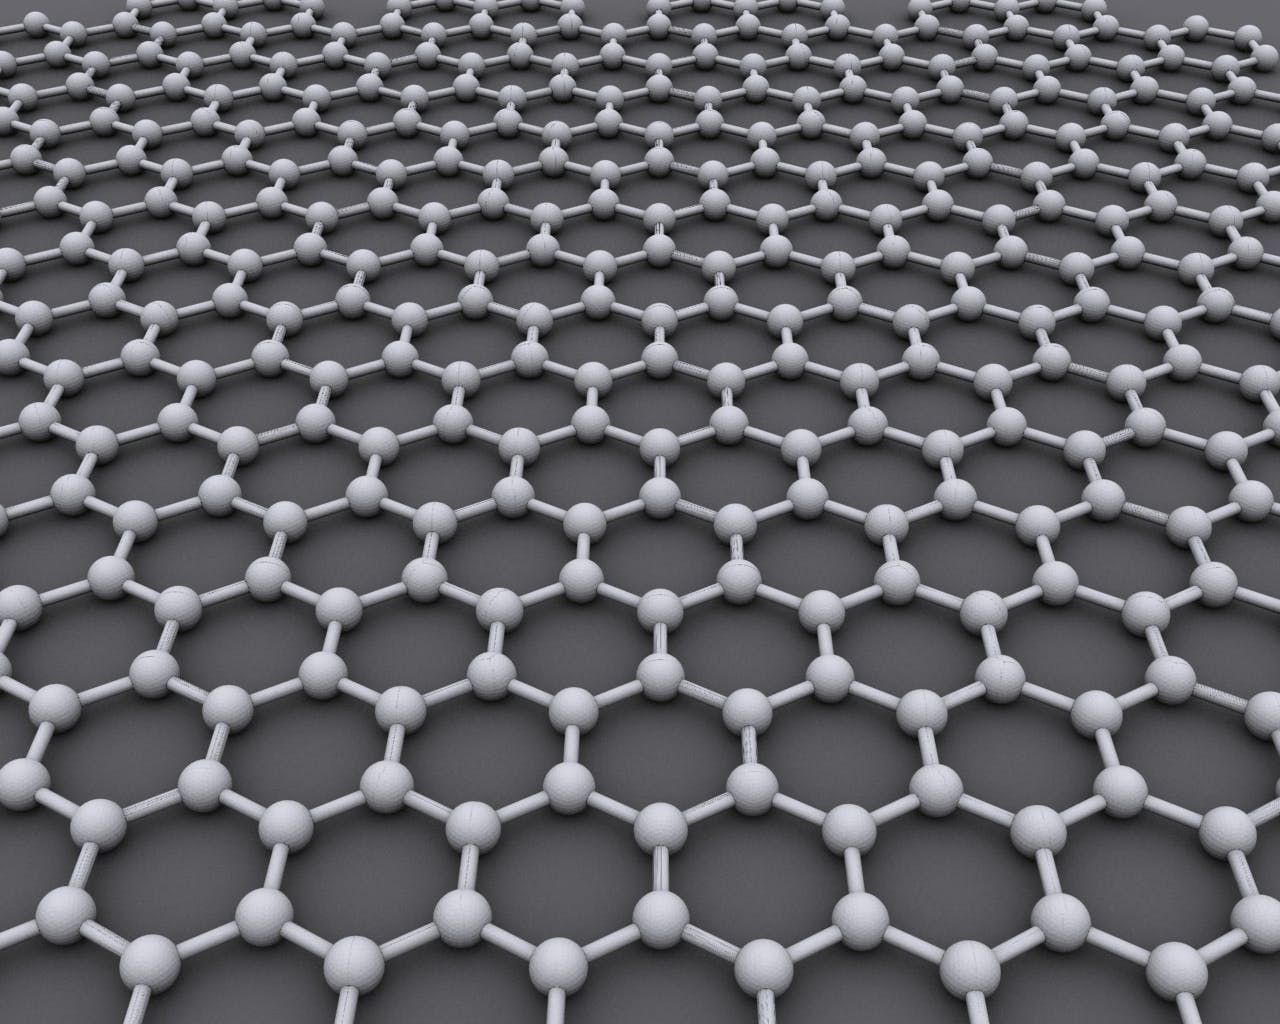 A model of graphene structure, showing a web of connected hexagons